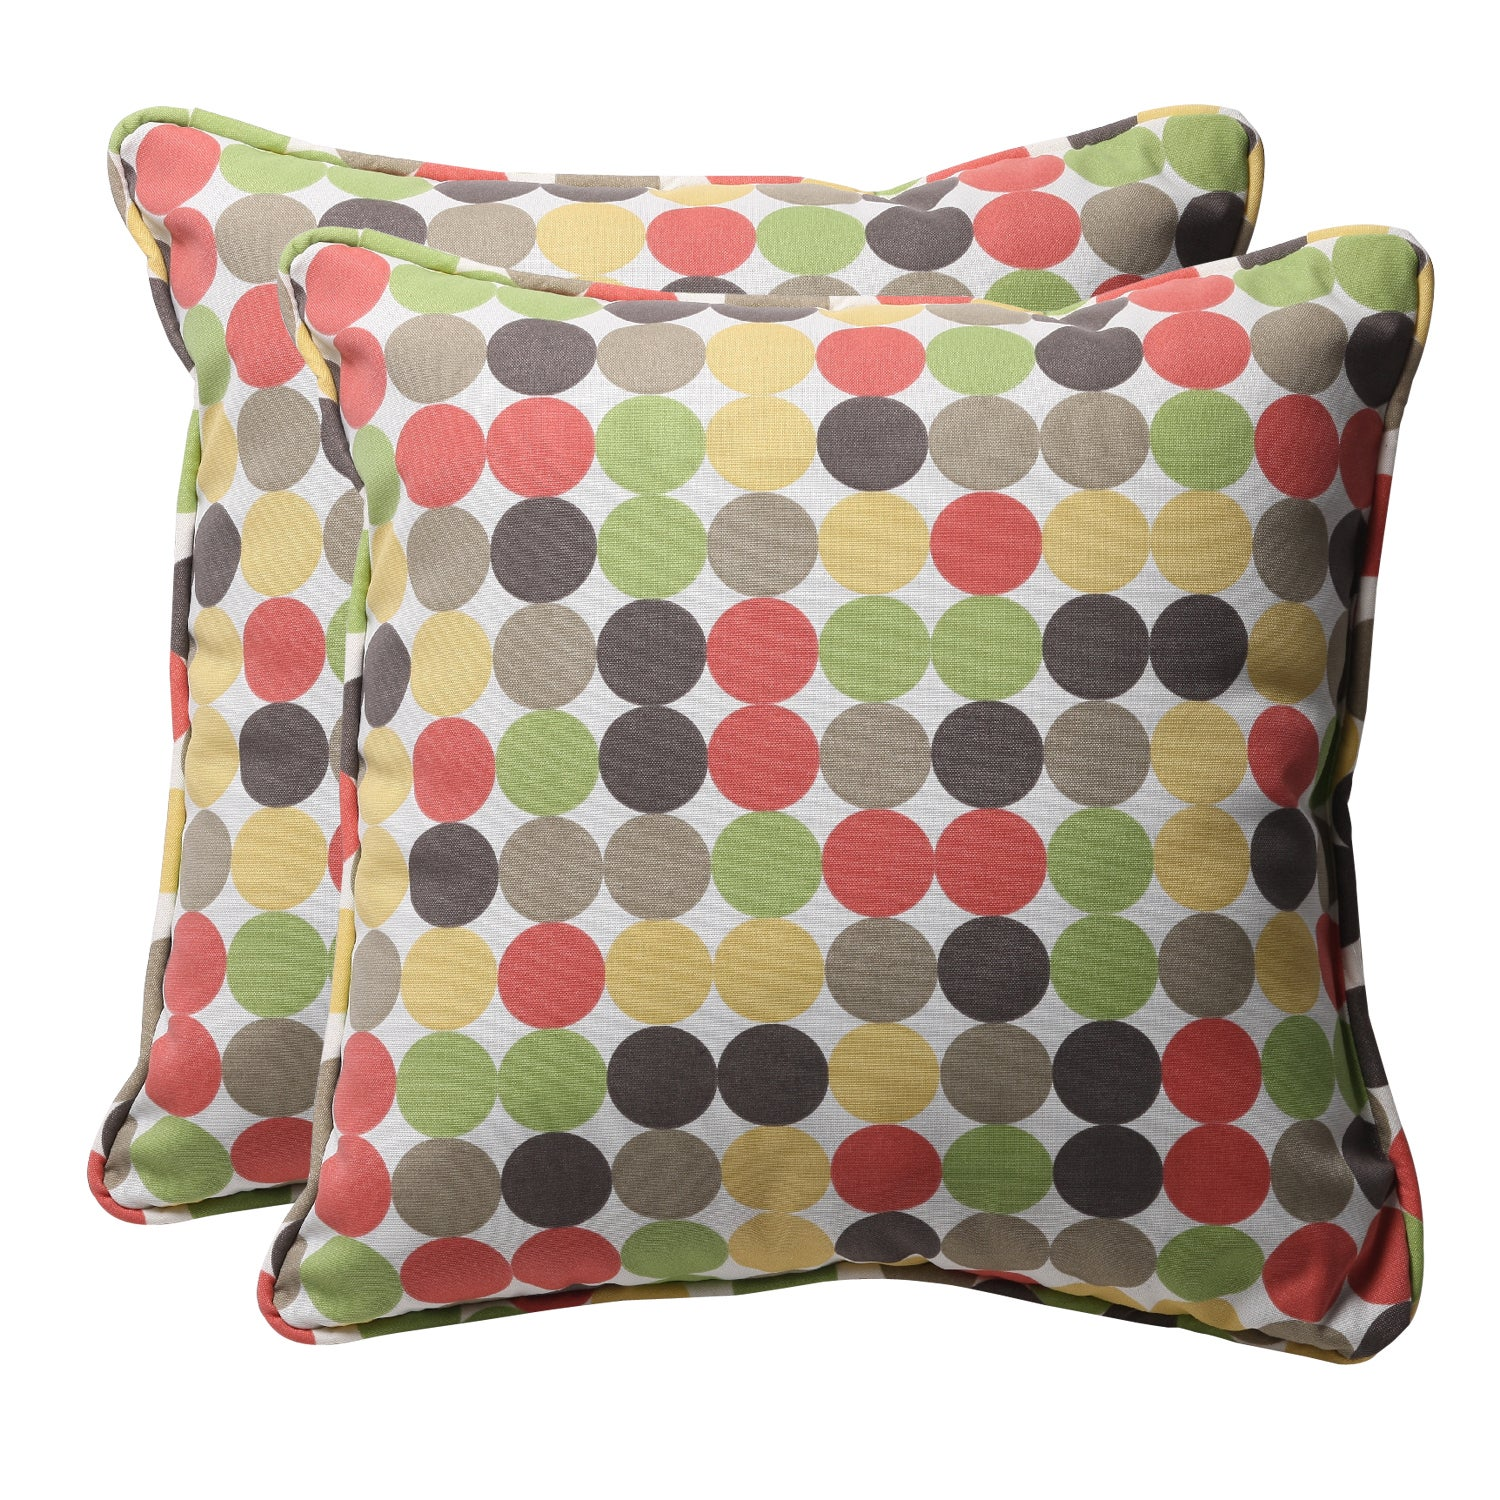 Decorative Multicolored Polka Dots Square Outdoor Toss Pillows (Set of 2)